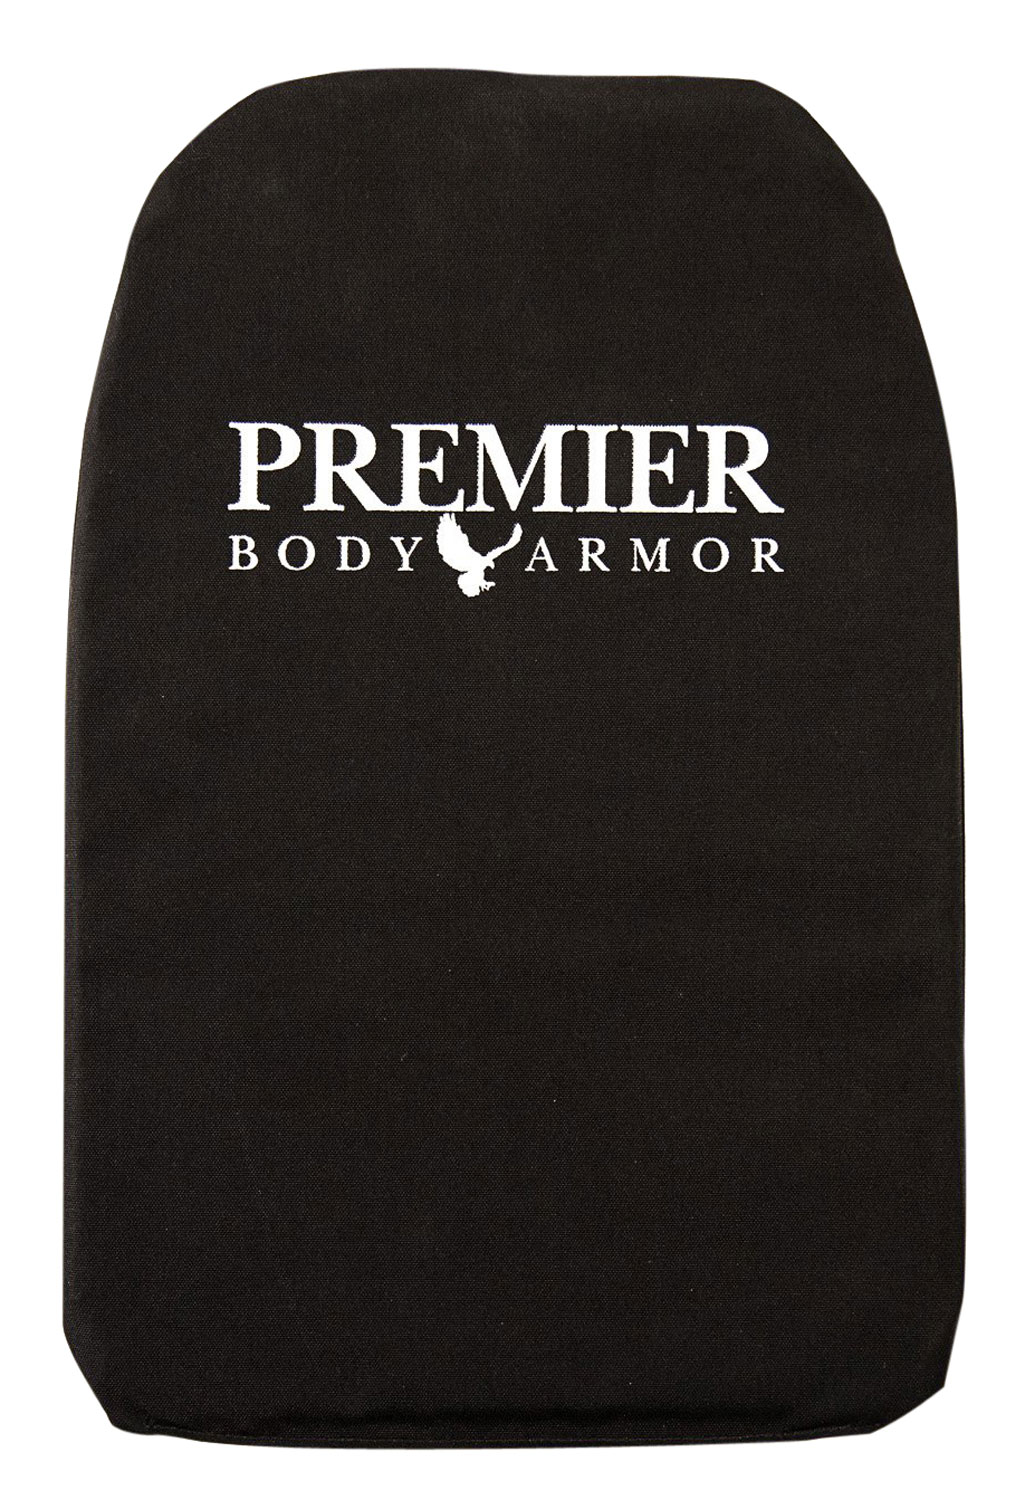 PREMIER BODY ARMOR LLC BPP9019 Backpack Panel Vertx EDC Ready Body Armor Level IIIA Kevlar/500D Cordura Black